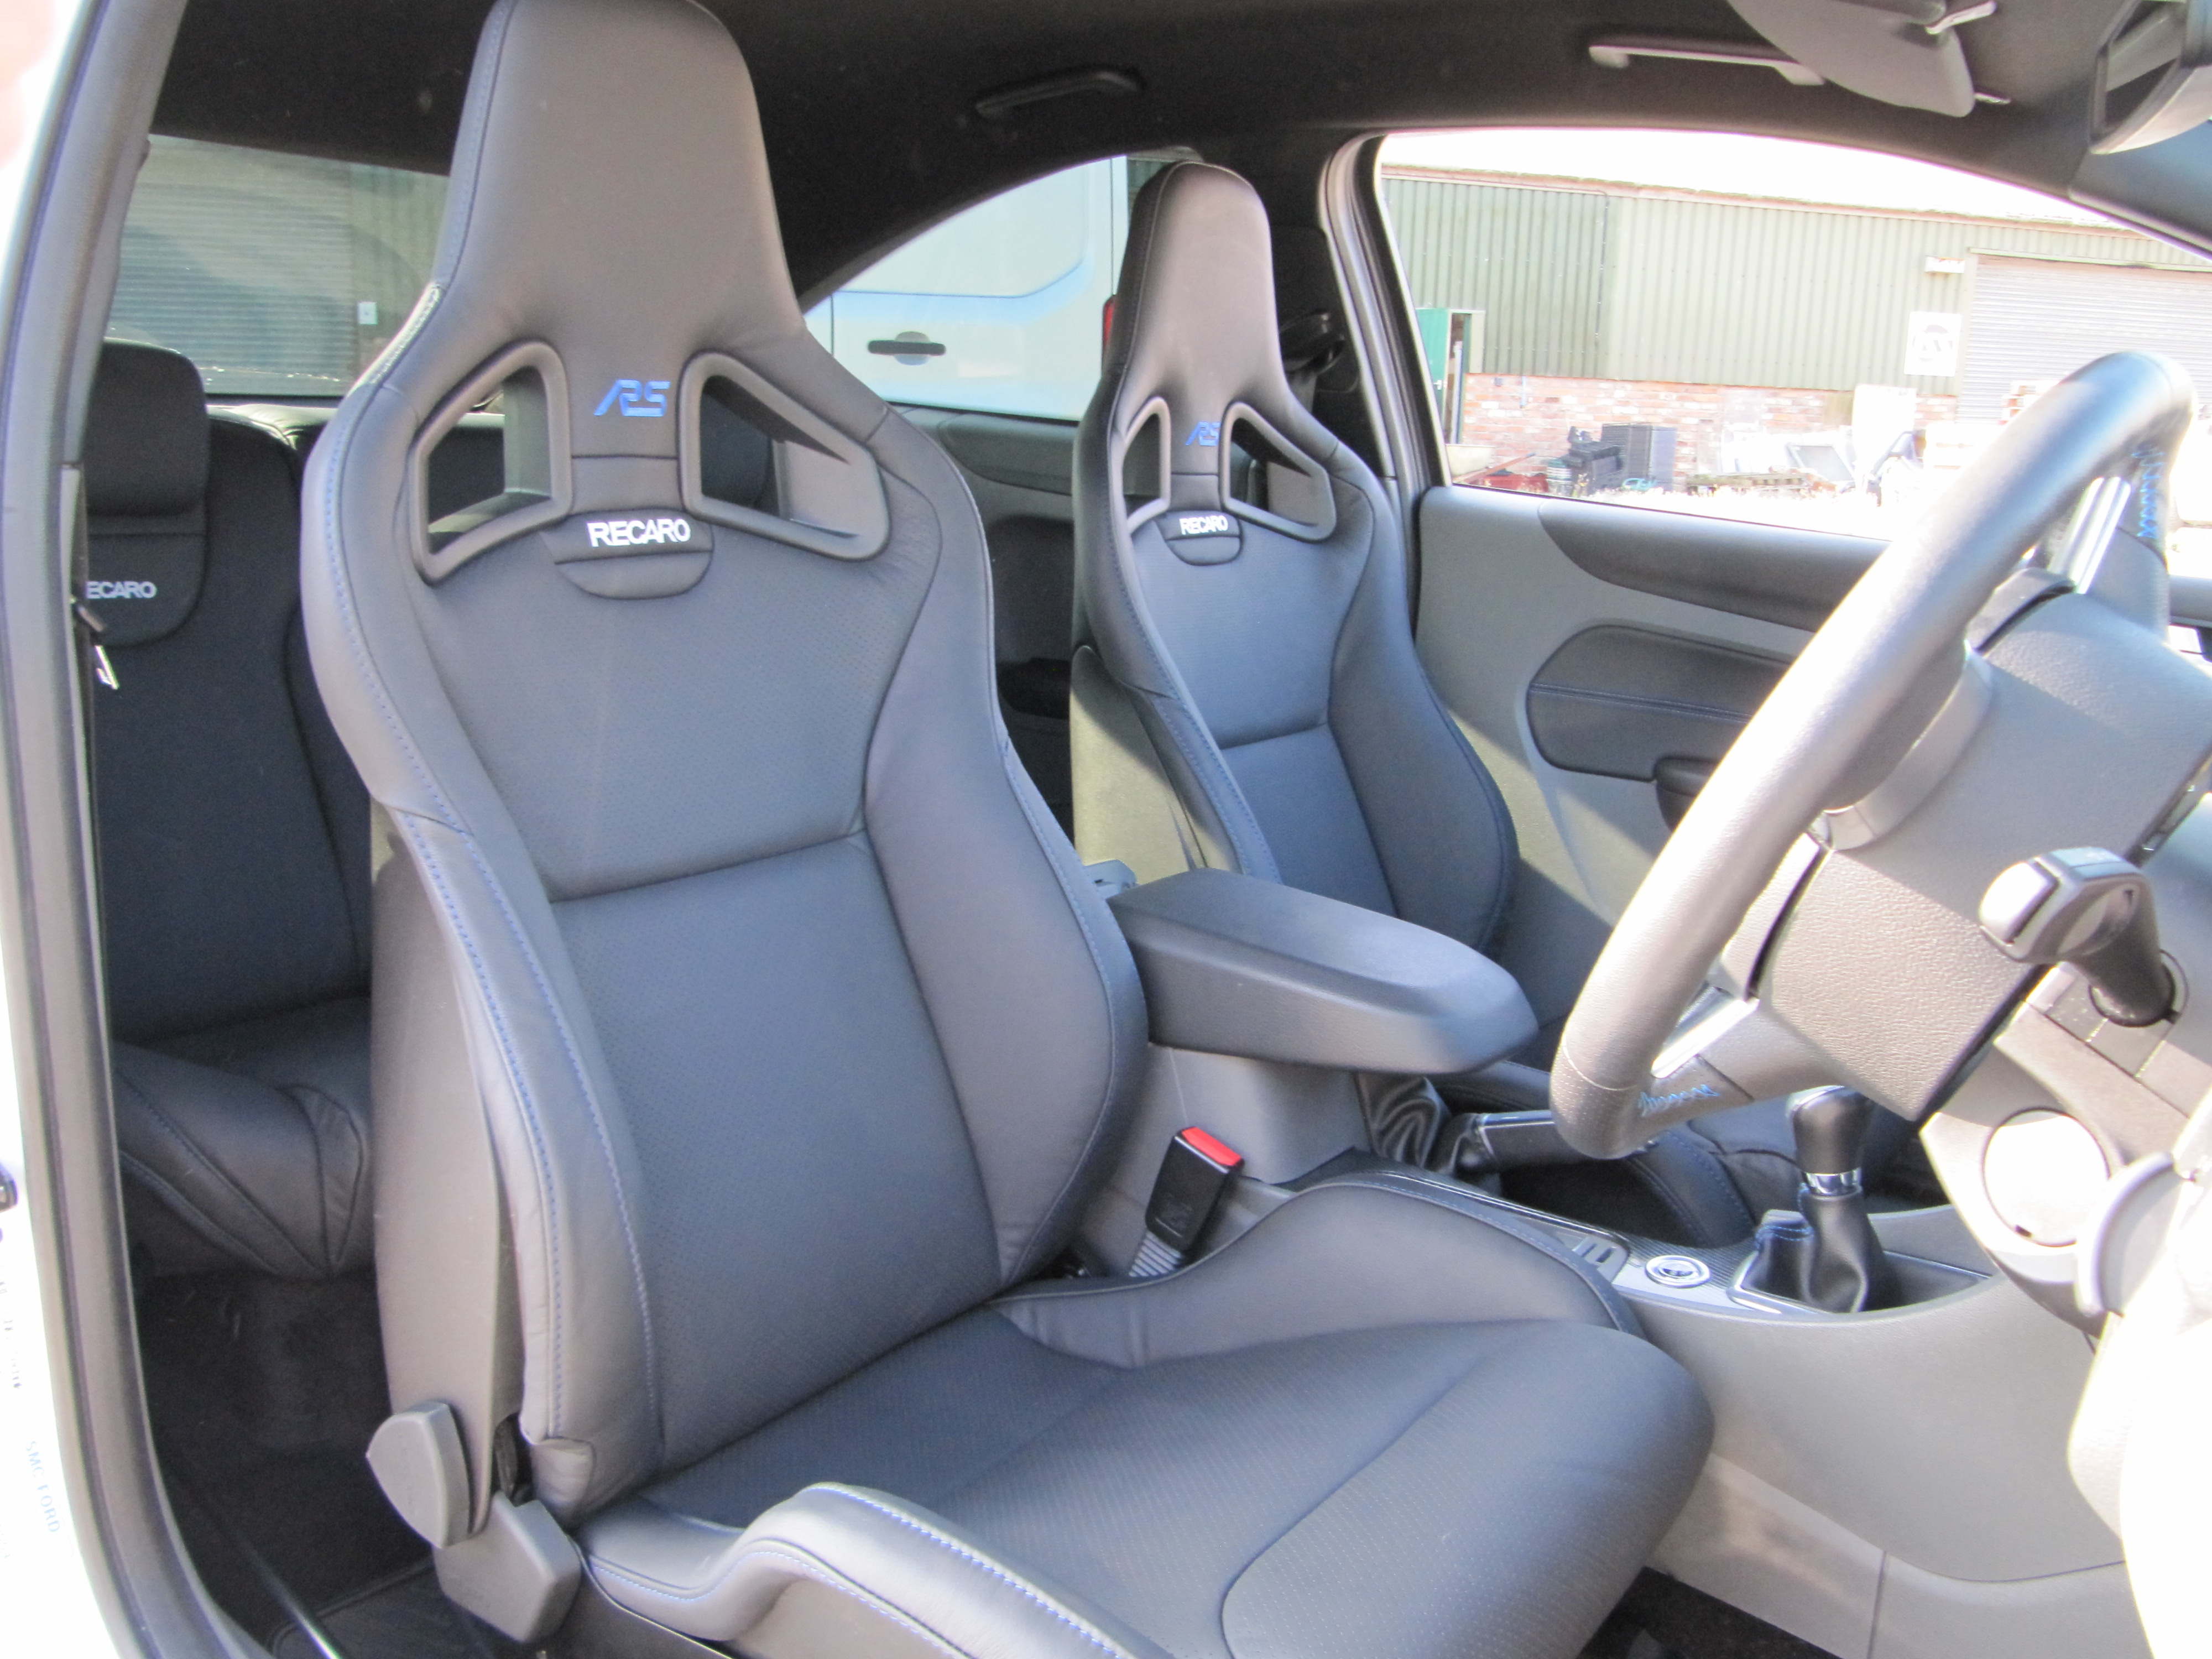 Ford Focus Rs Seat Surgeons